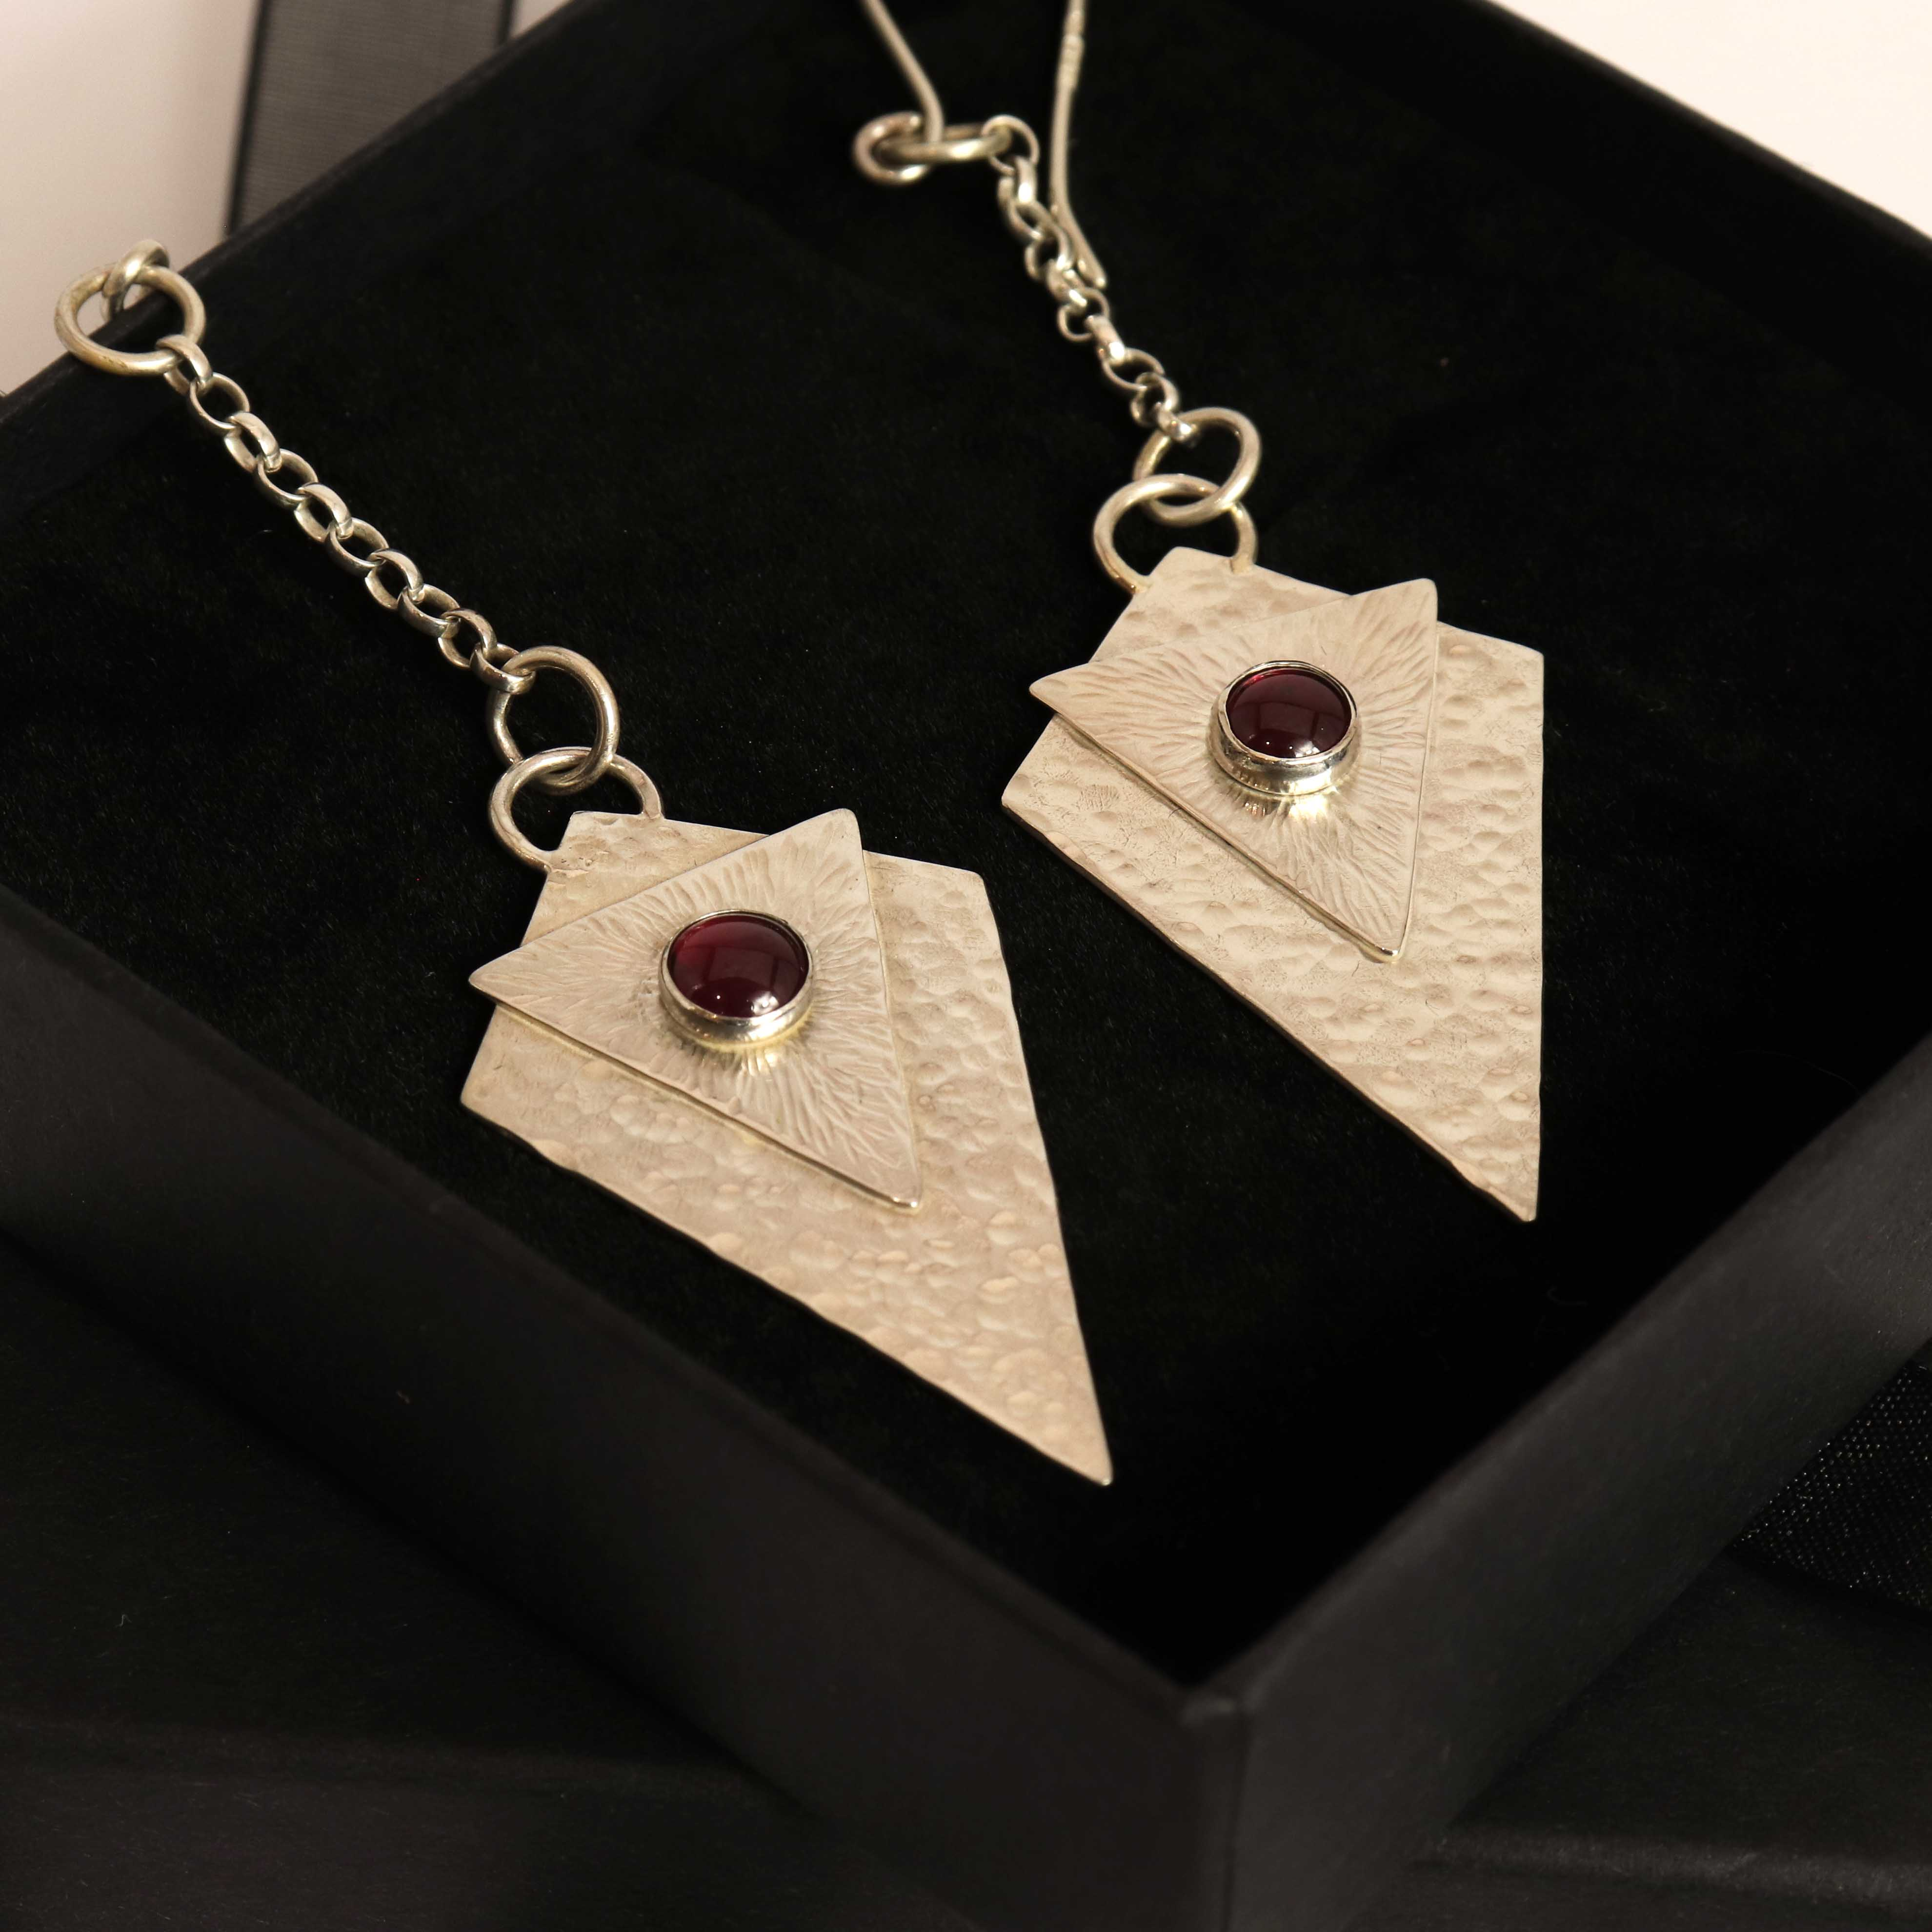 Art Deco Style Chain Drop Earrings With Garnet Cabochons